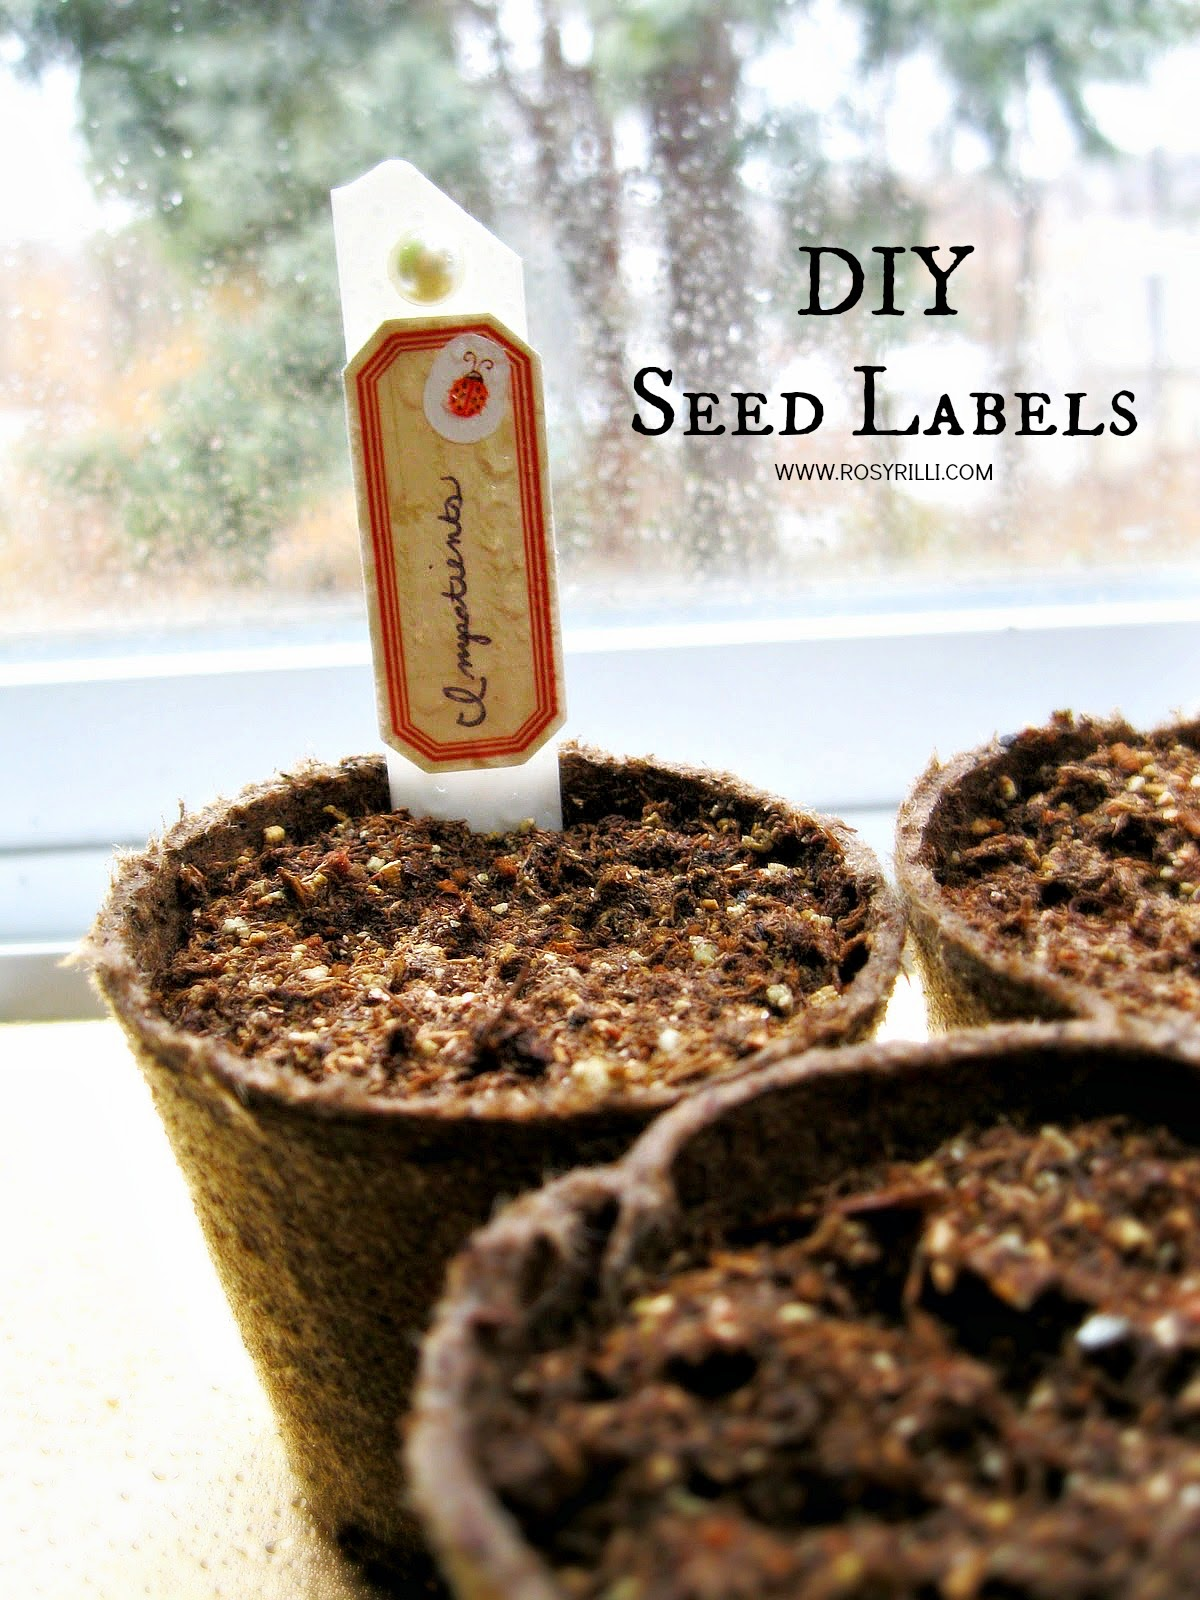 ROSYRILLI.COM DIY seed labels